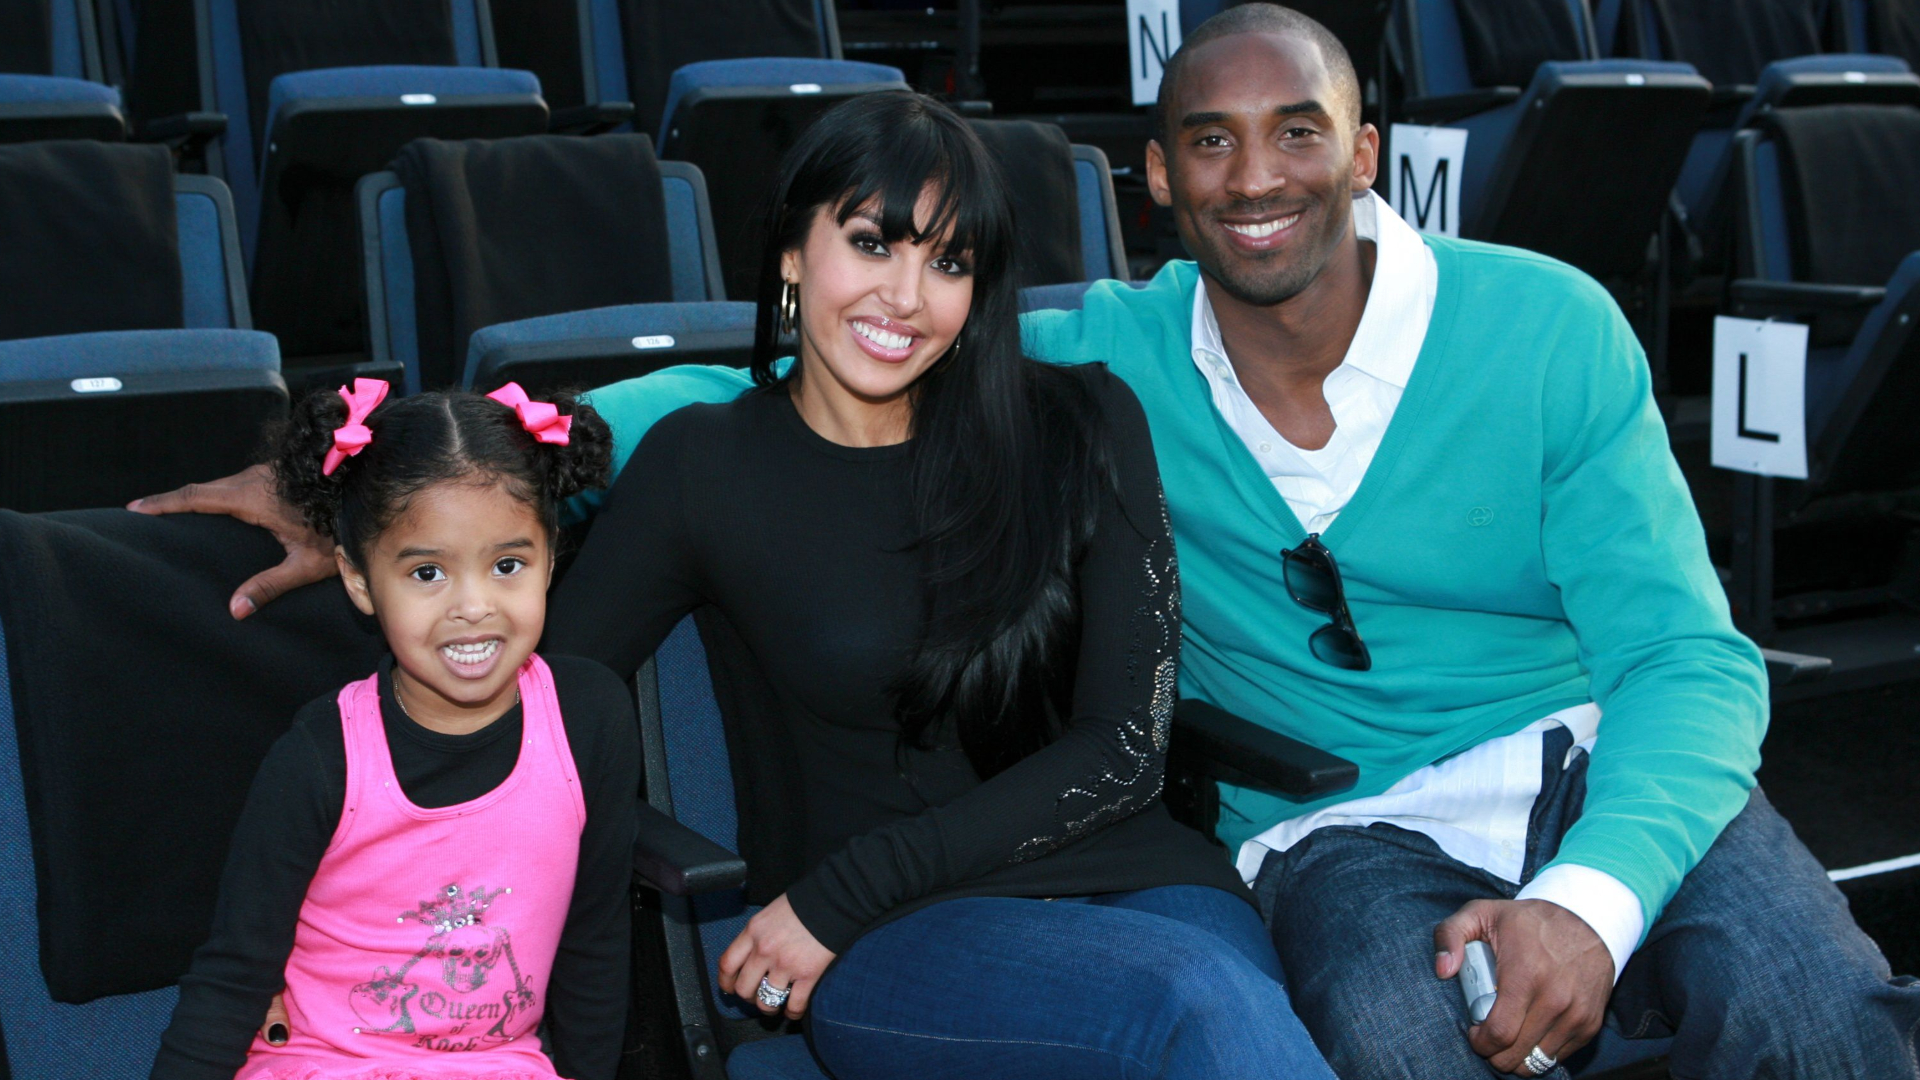 17 Heartwarming Photos Of Kobe Bryant With His Wife Daughters Sheknows